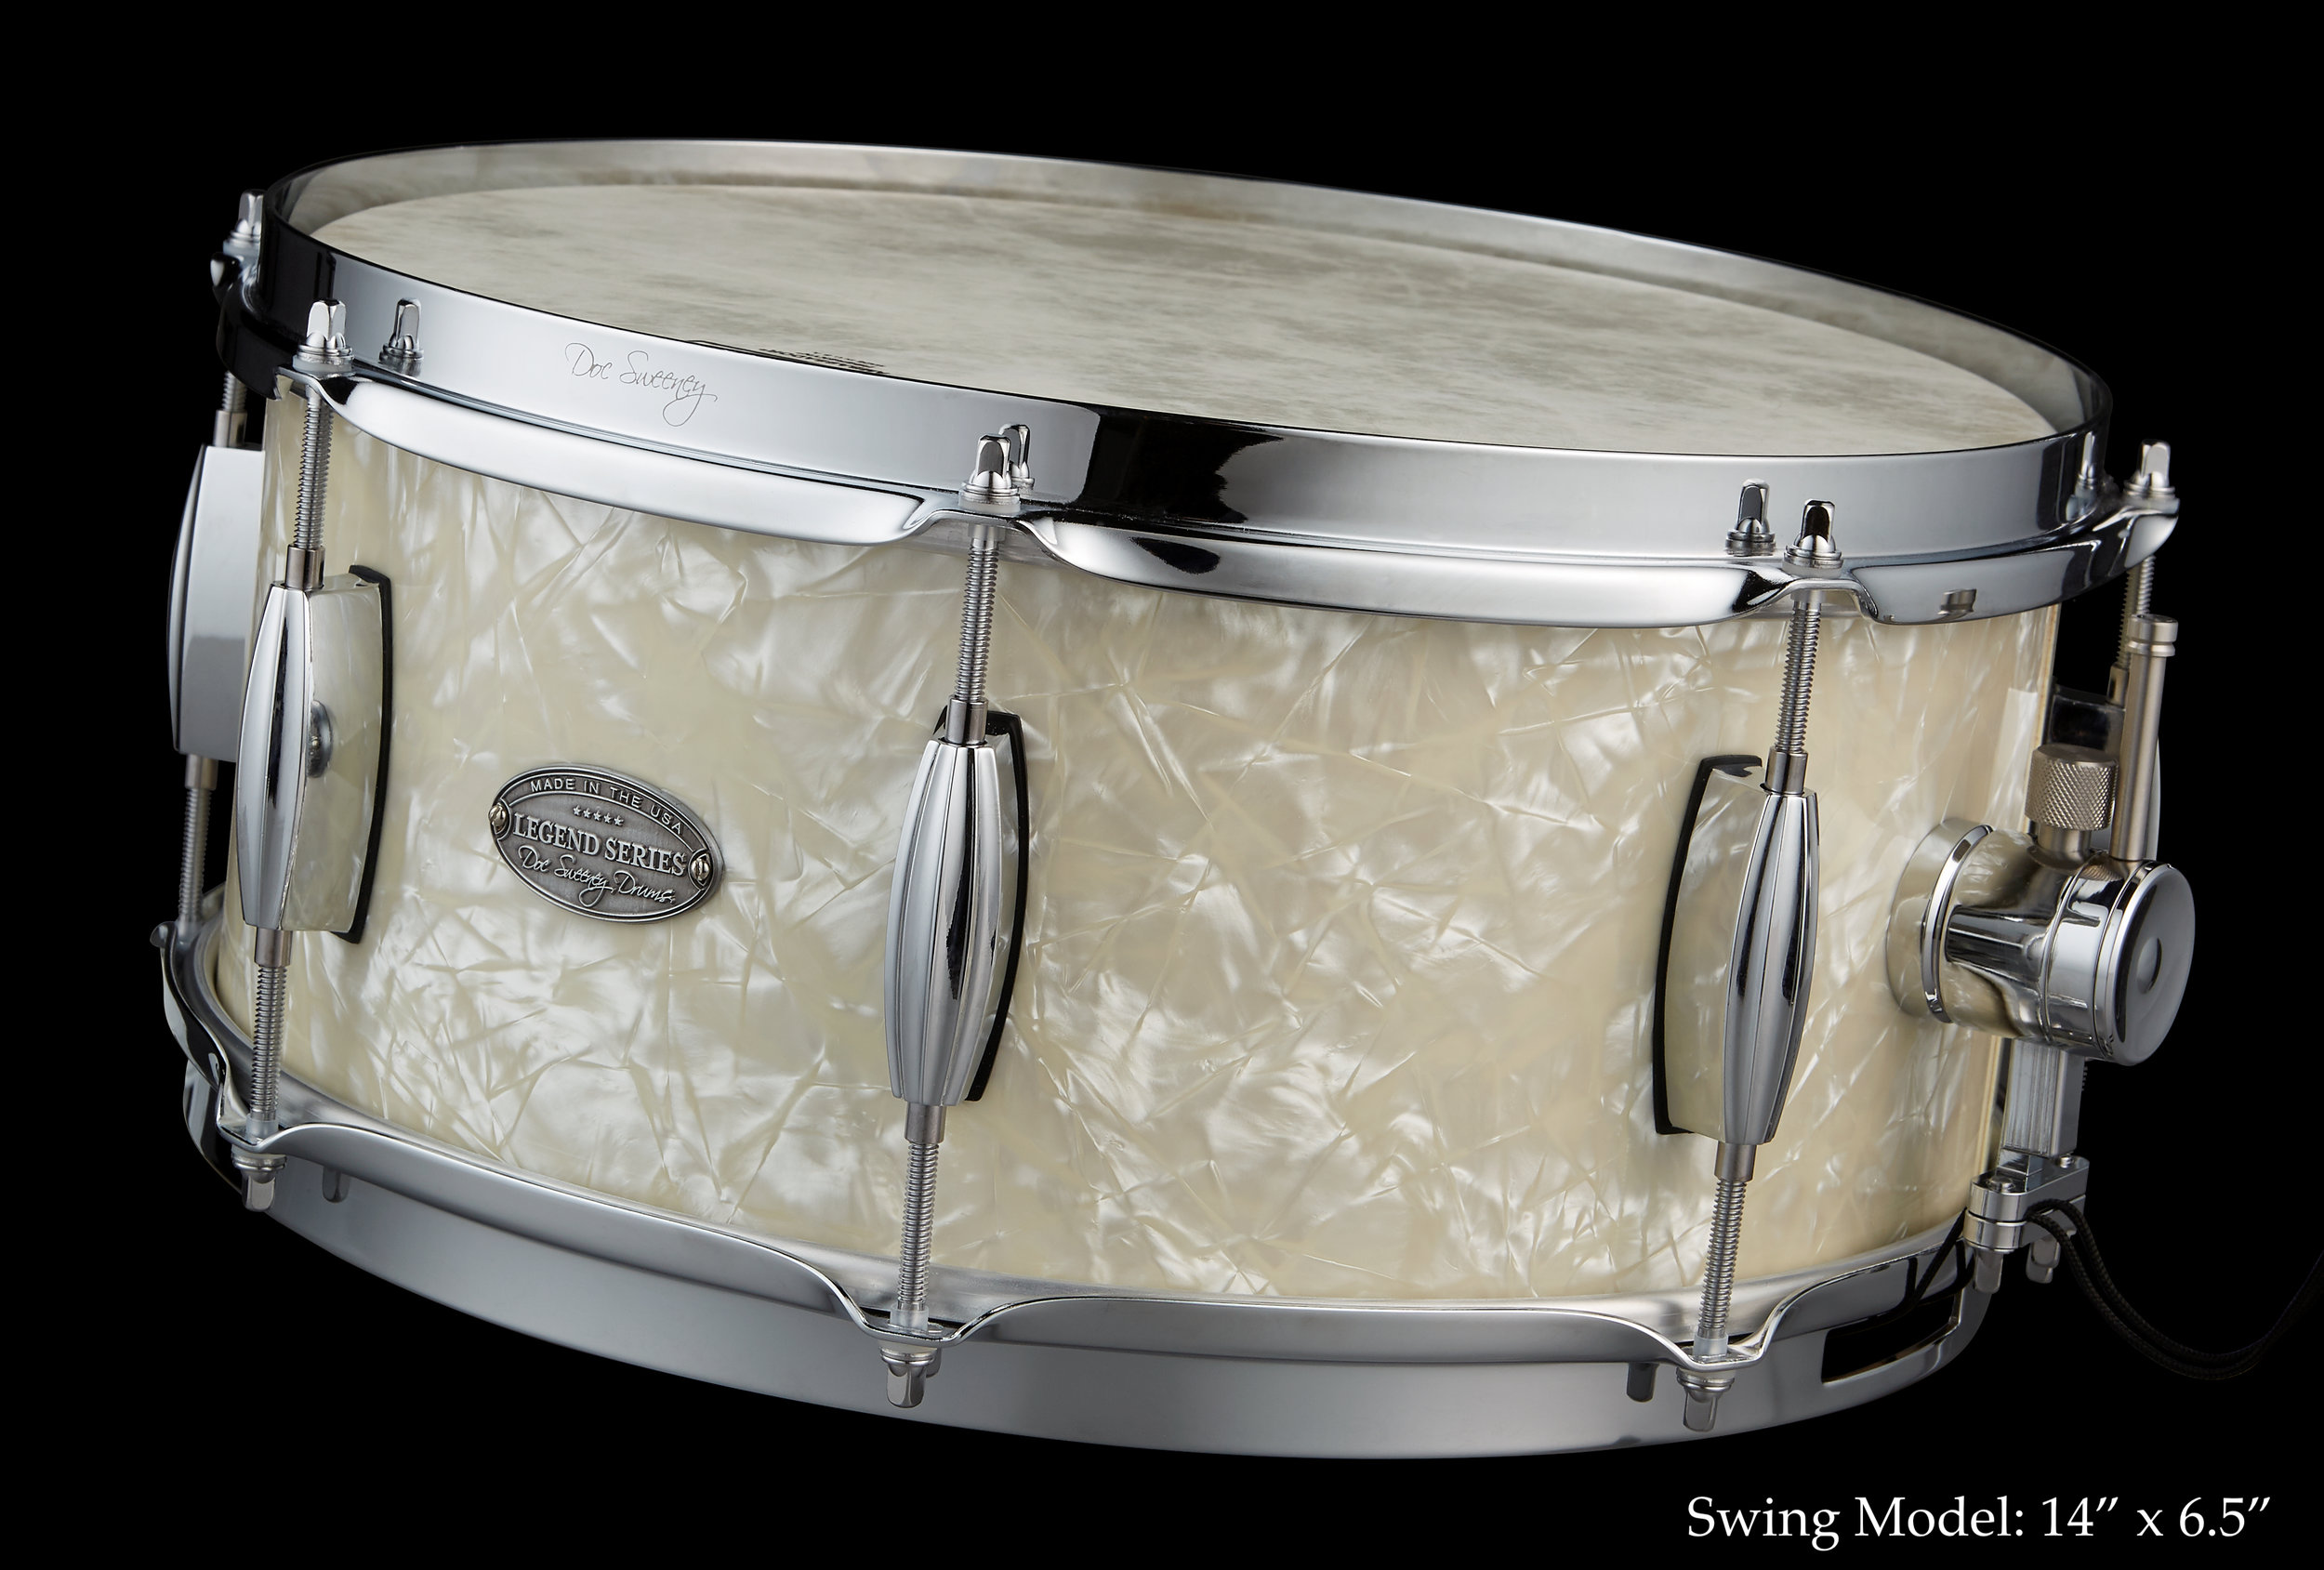 "Specs - Species: Maple, Myrtle, WalnutSizes:14x5.5, 14x6.5, and ""Super"" Legend 14x7.5Shell Thickness: 5/16"" with re-ringsBearing Edge: 30 degree round-overHardware:n Beavertail lugs, DS1 strainer, stick chopper or stick saver hoopsFinishes: Hand-rubbed oil, White Marine Pearl"